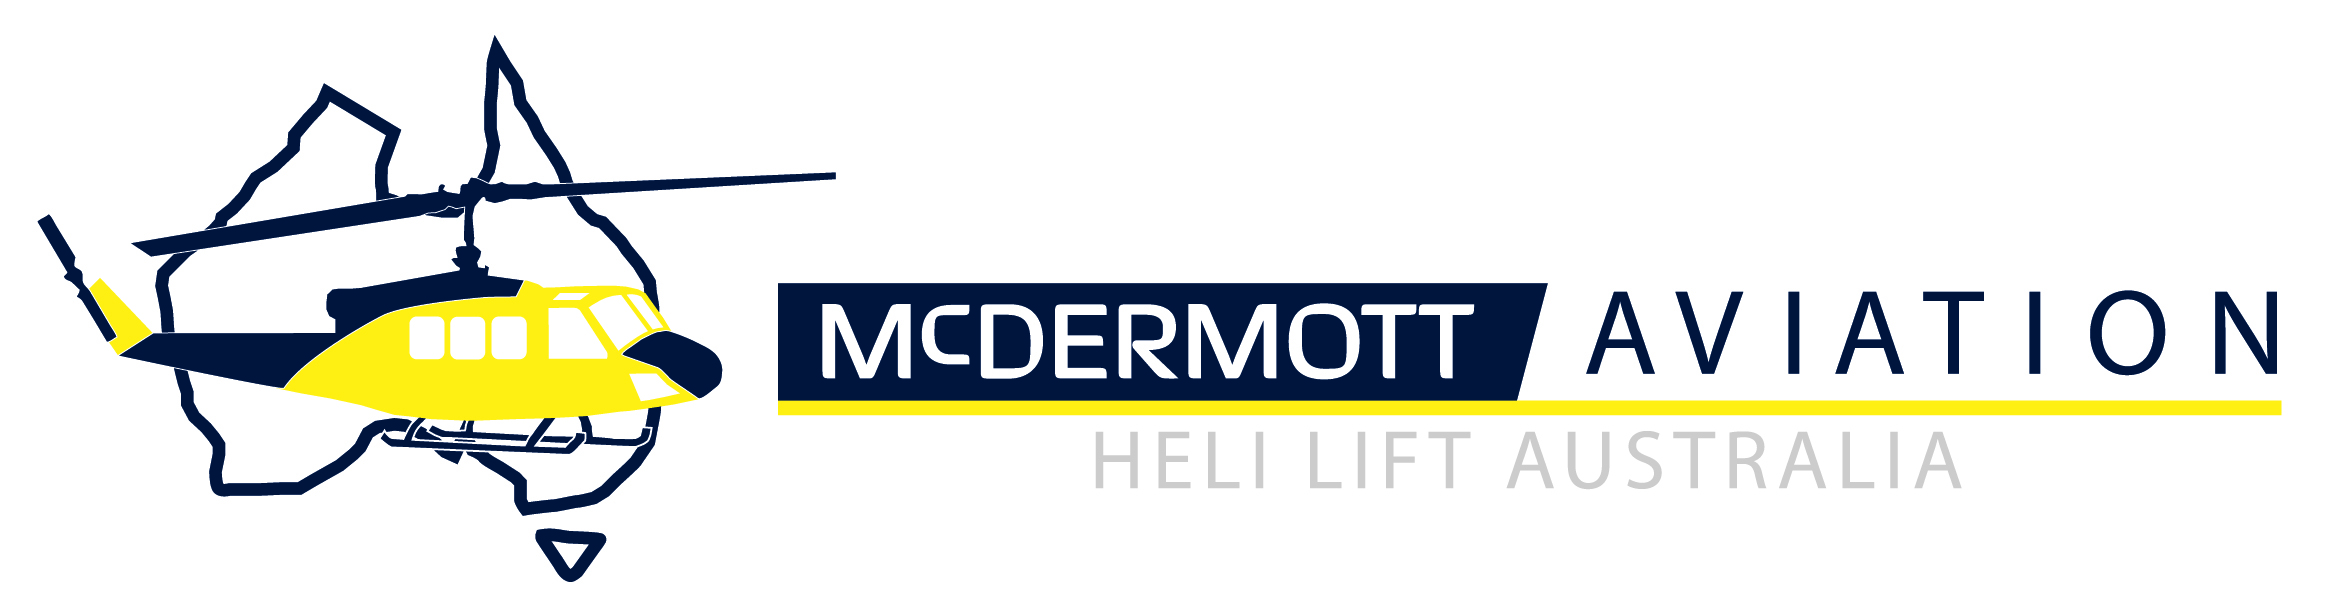 McDermott Aviation